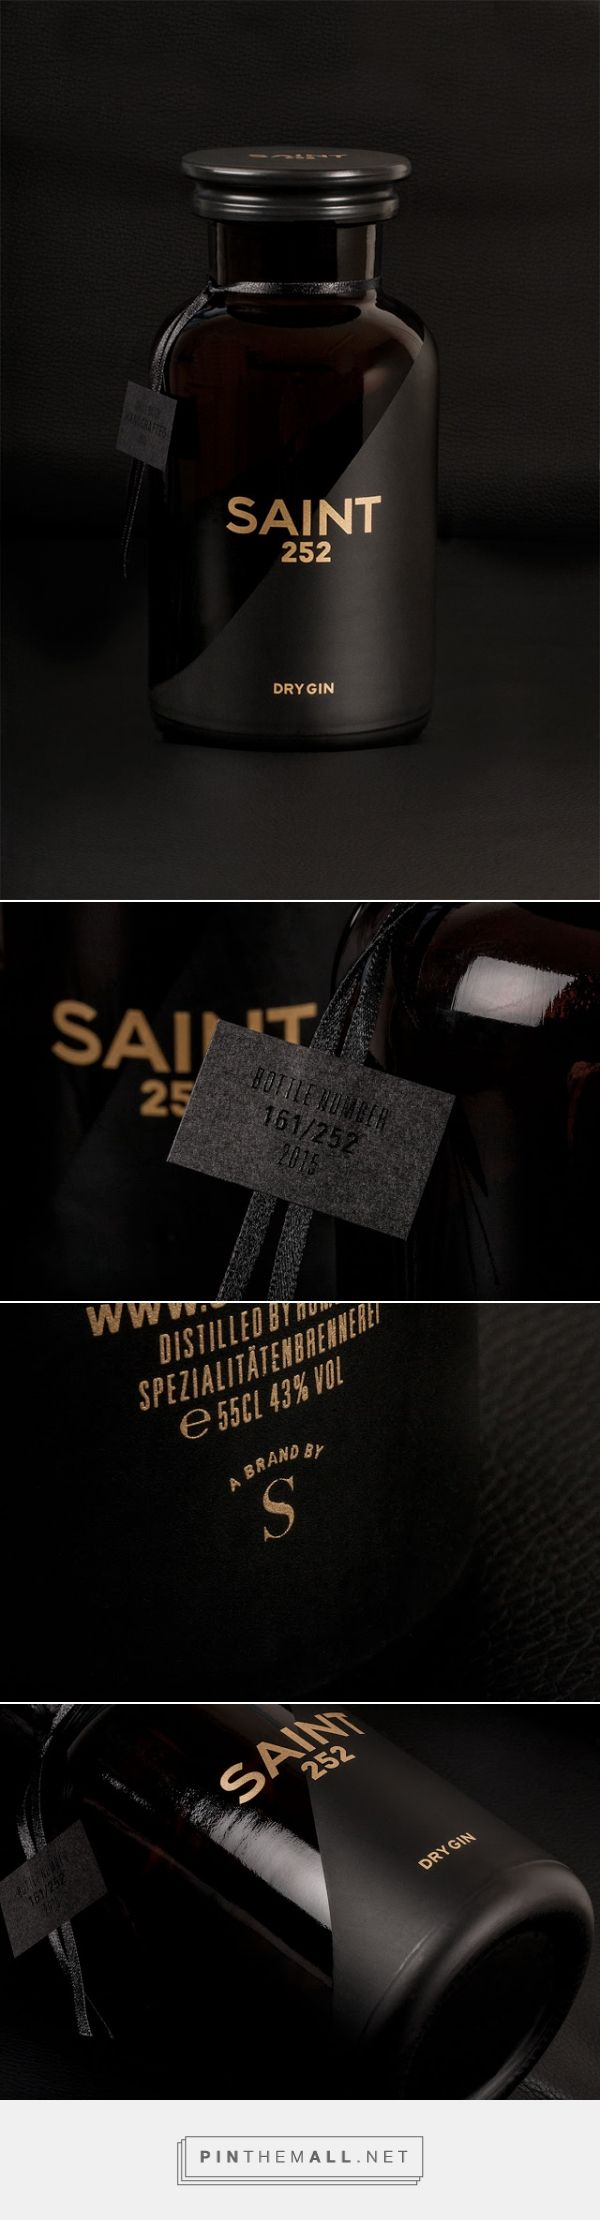 SAINT 252 ‪gin‬ ‪packaging‬ designed by Studio Schoch - http://www.packagingoftheworld.com/2015/08/saint-252.html